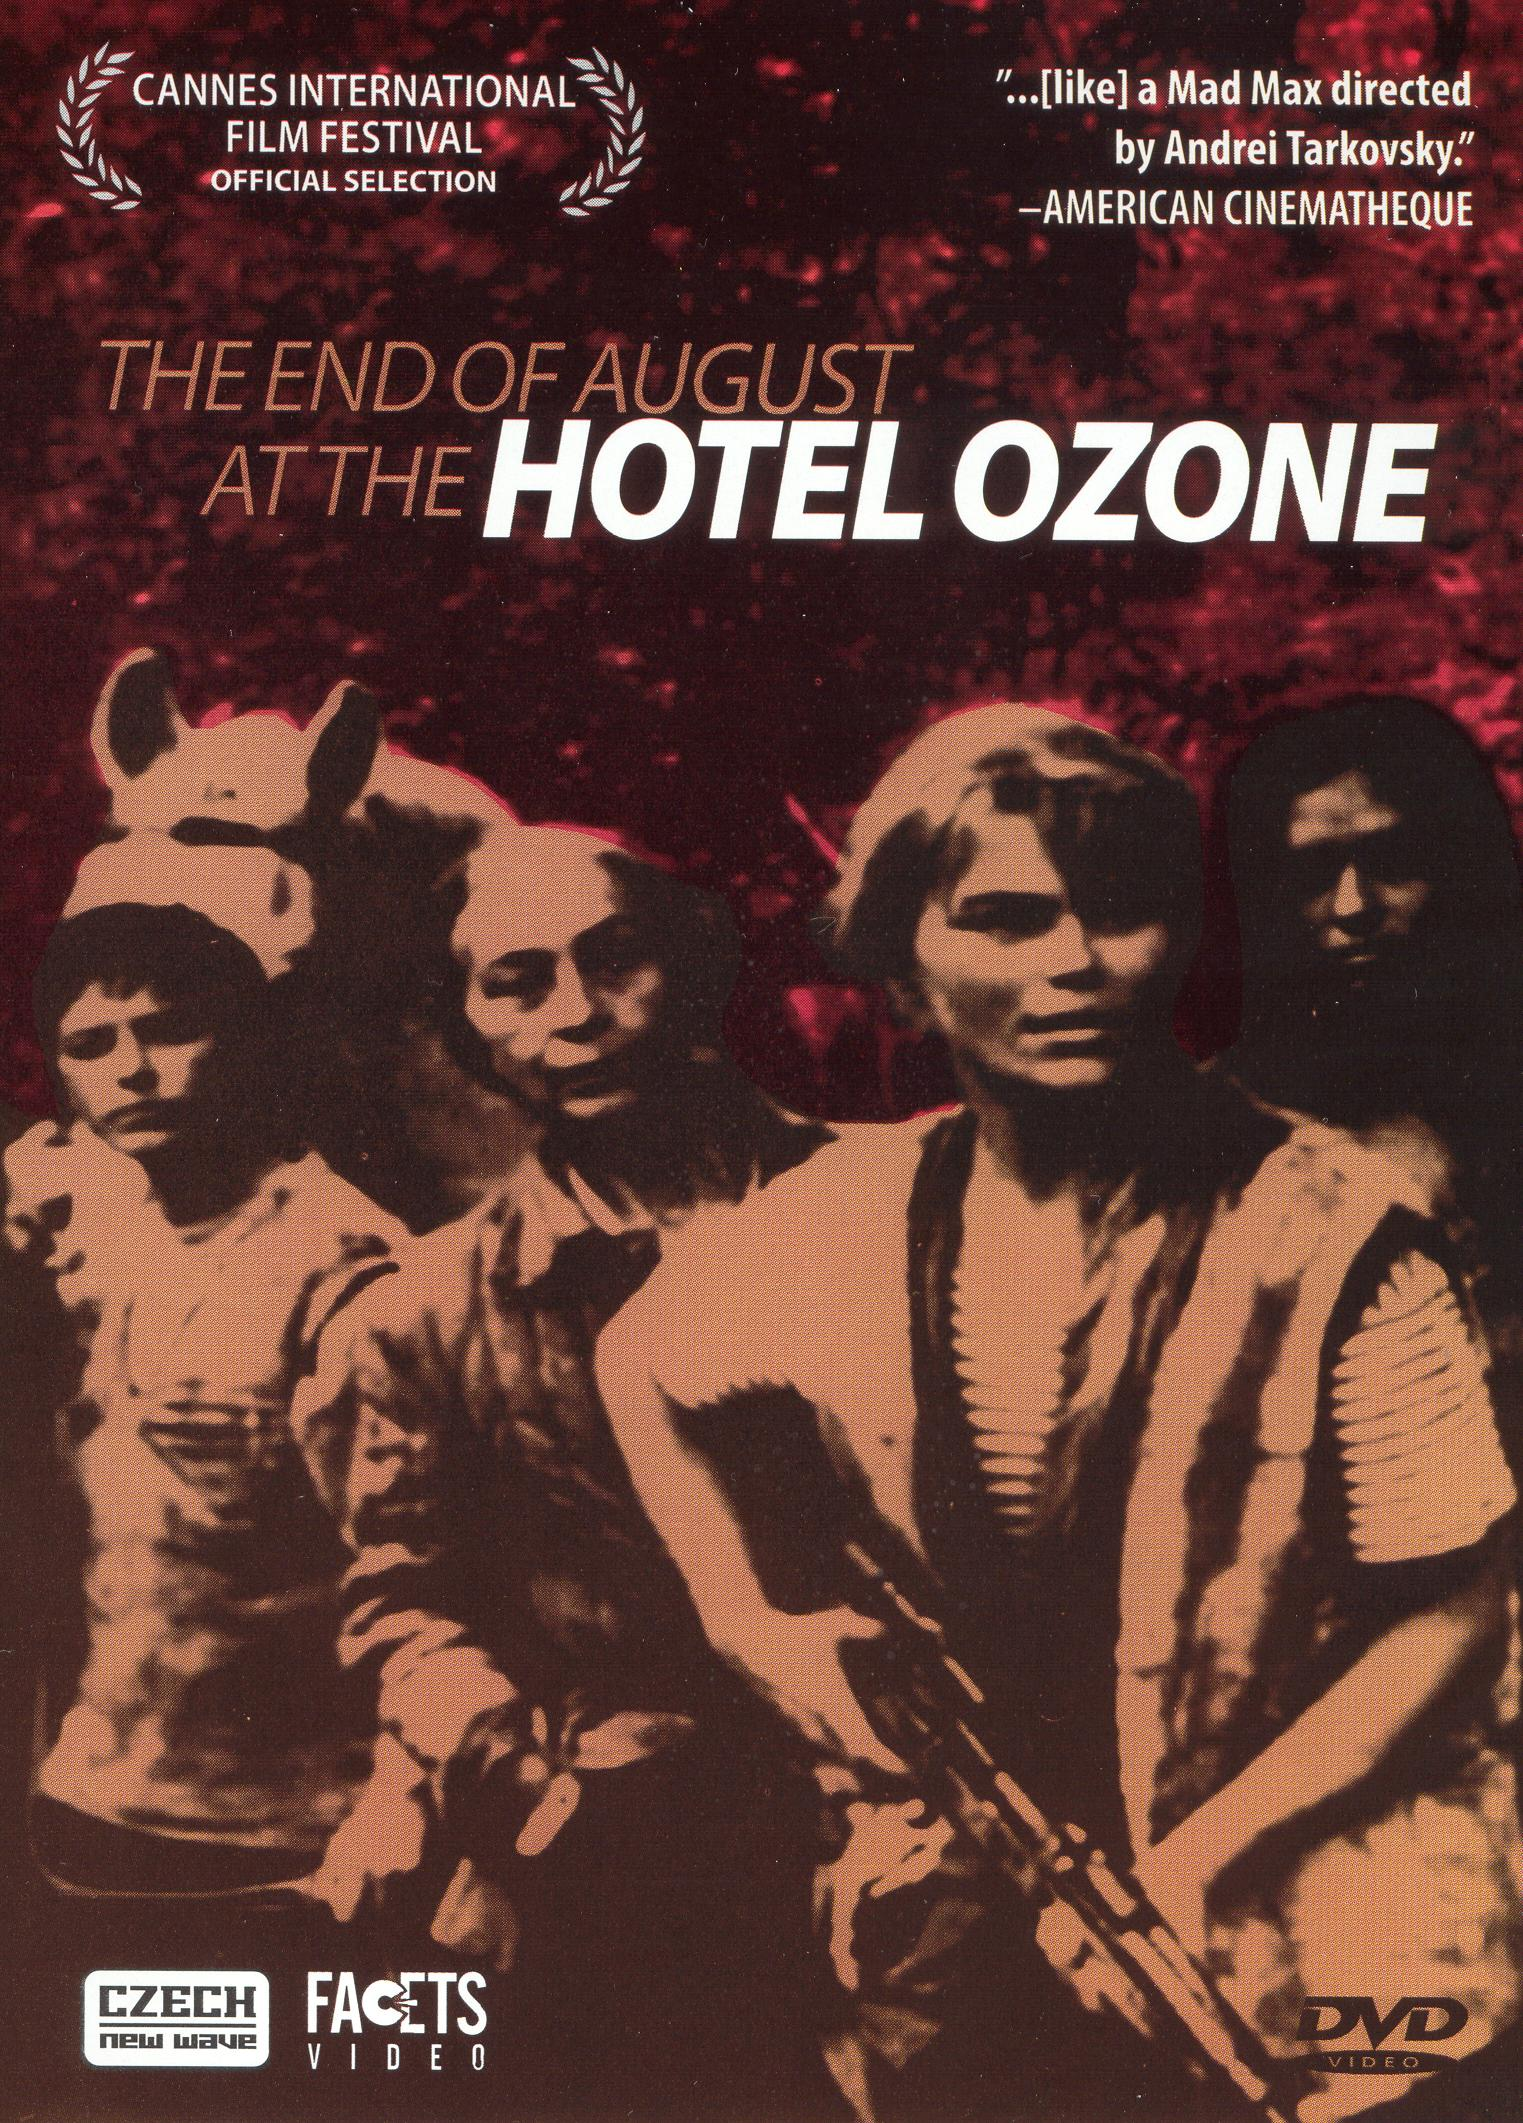 The End of August at the Hotel Ozone